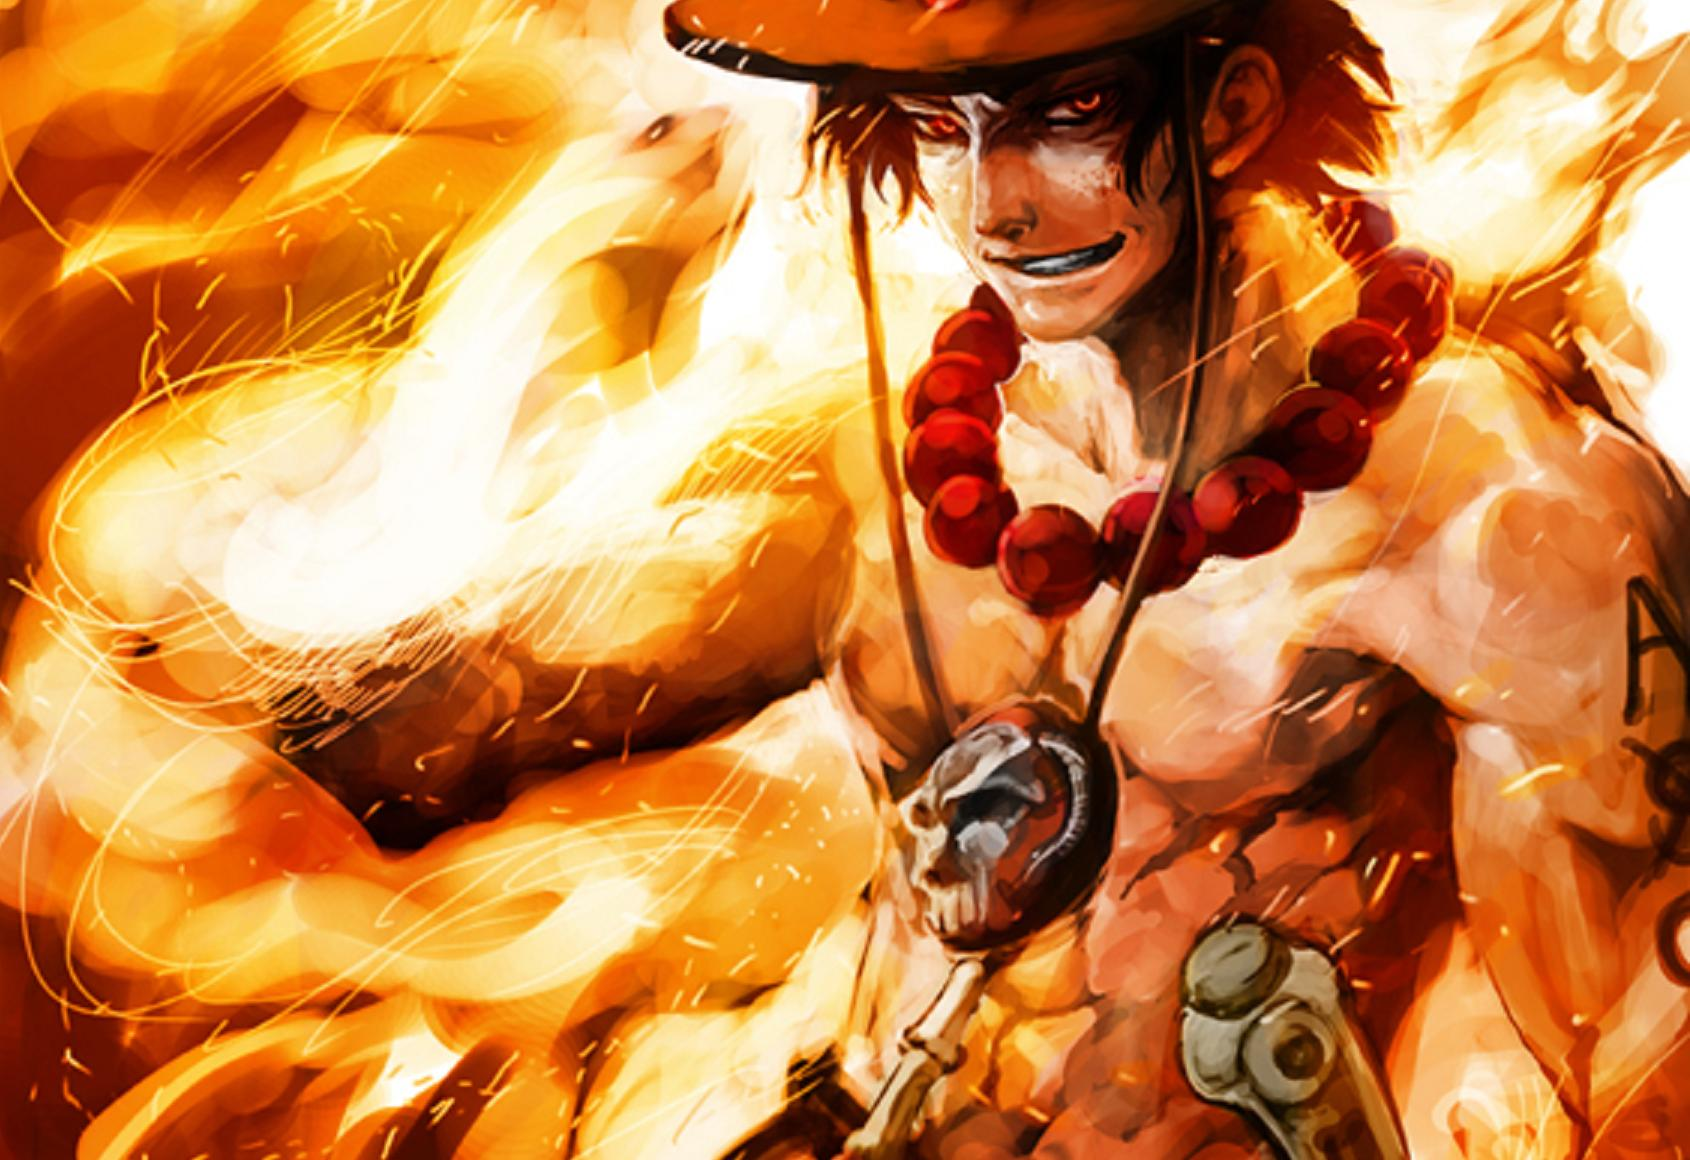 75 One Piece Ace Wallpaper On Wallpapersafari